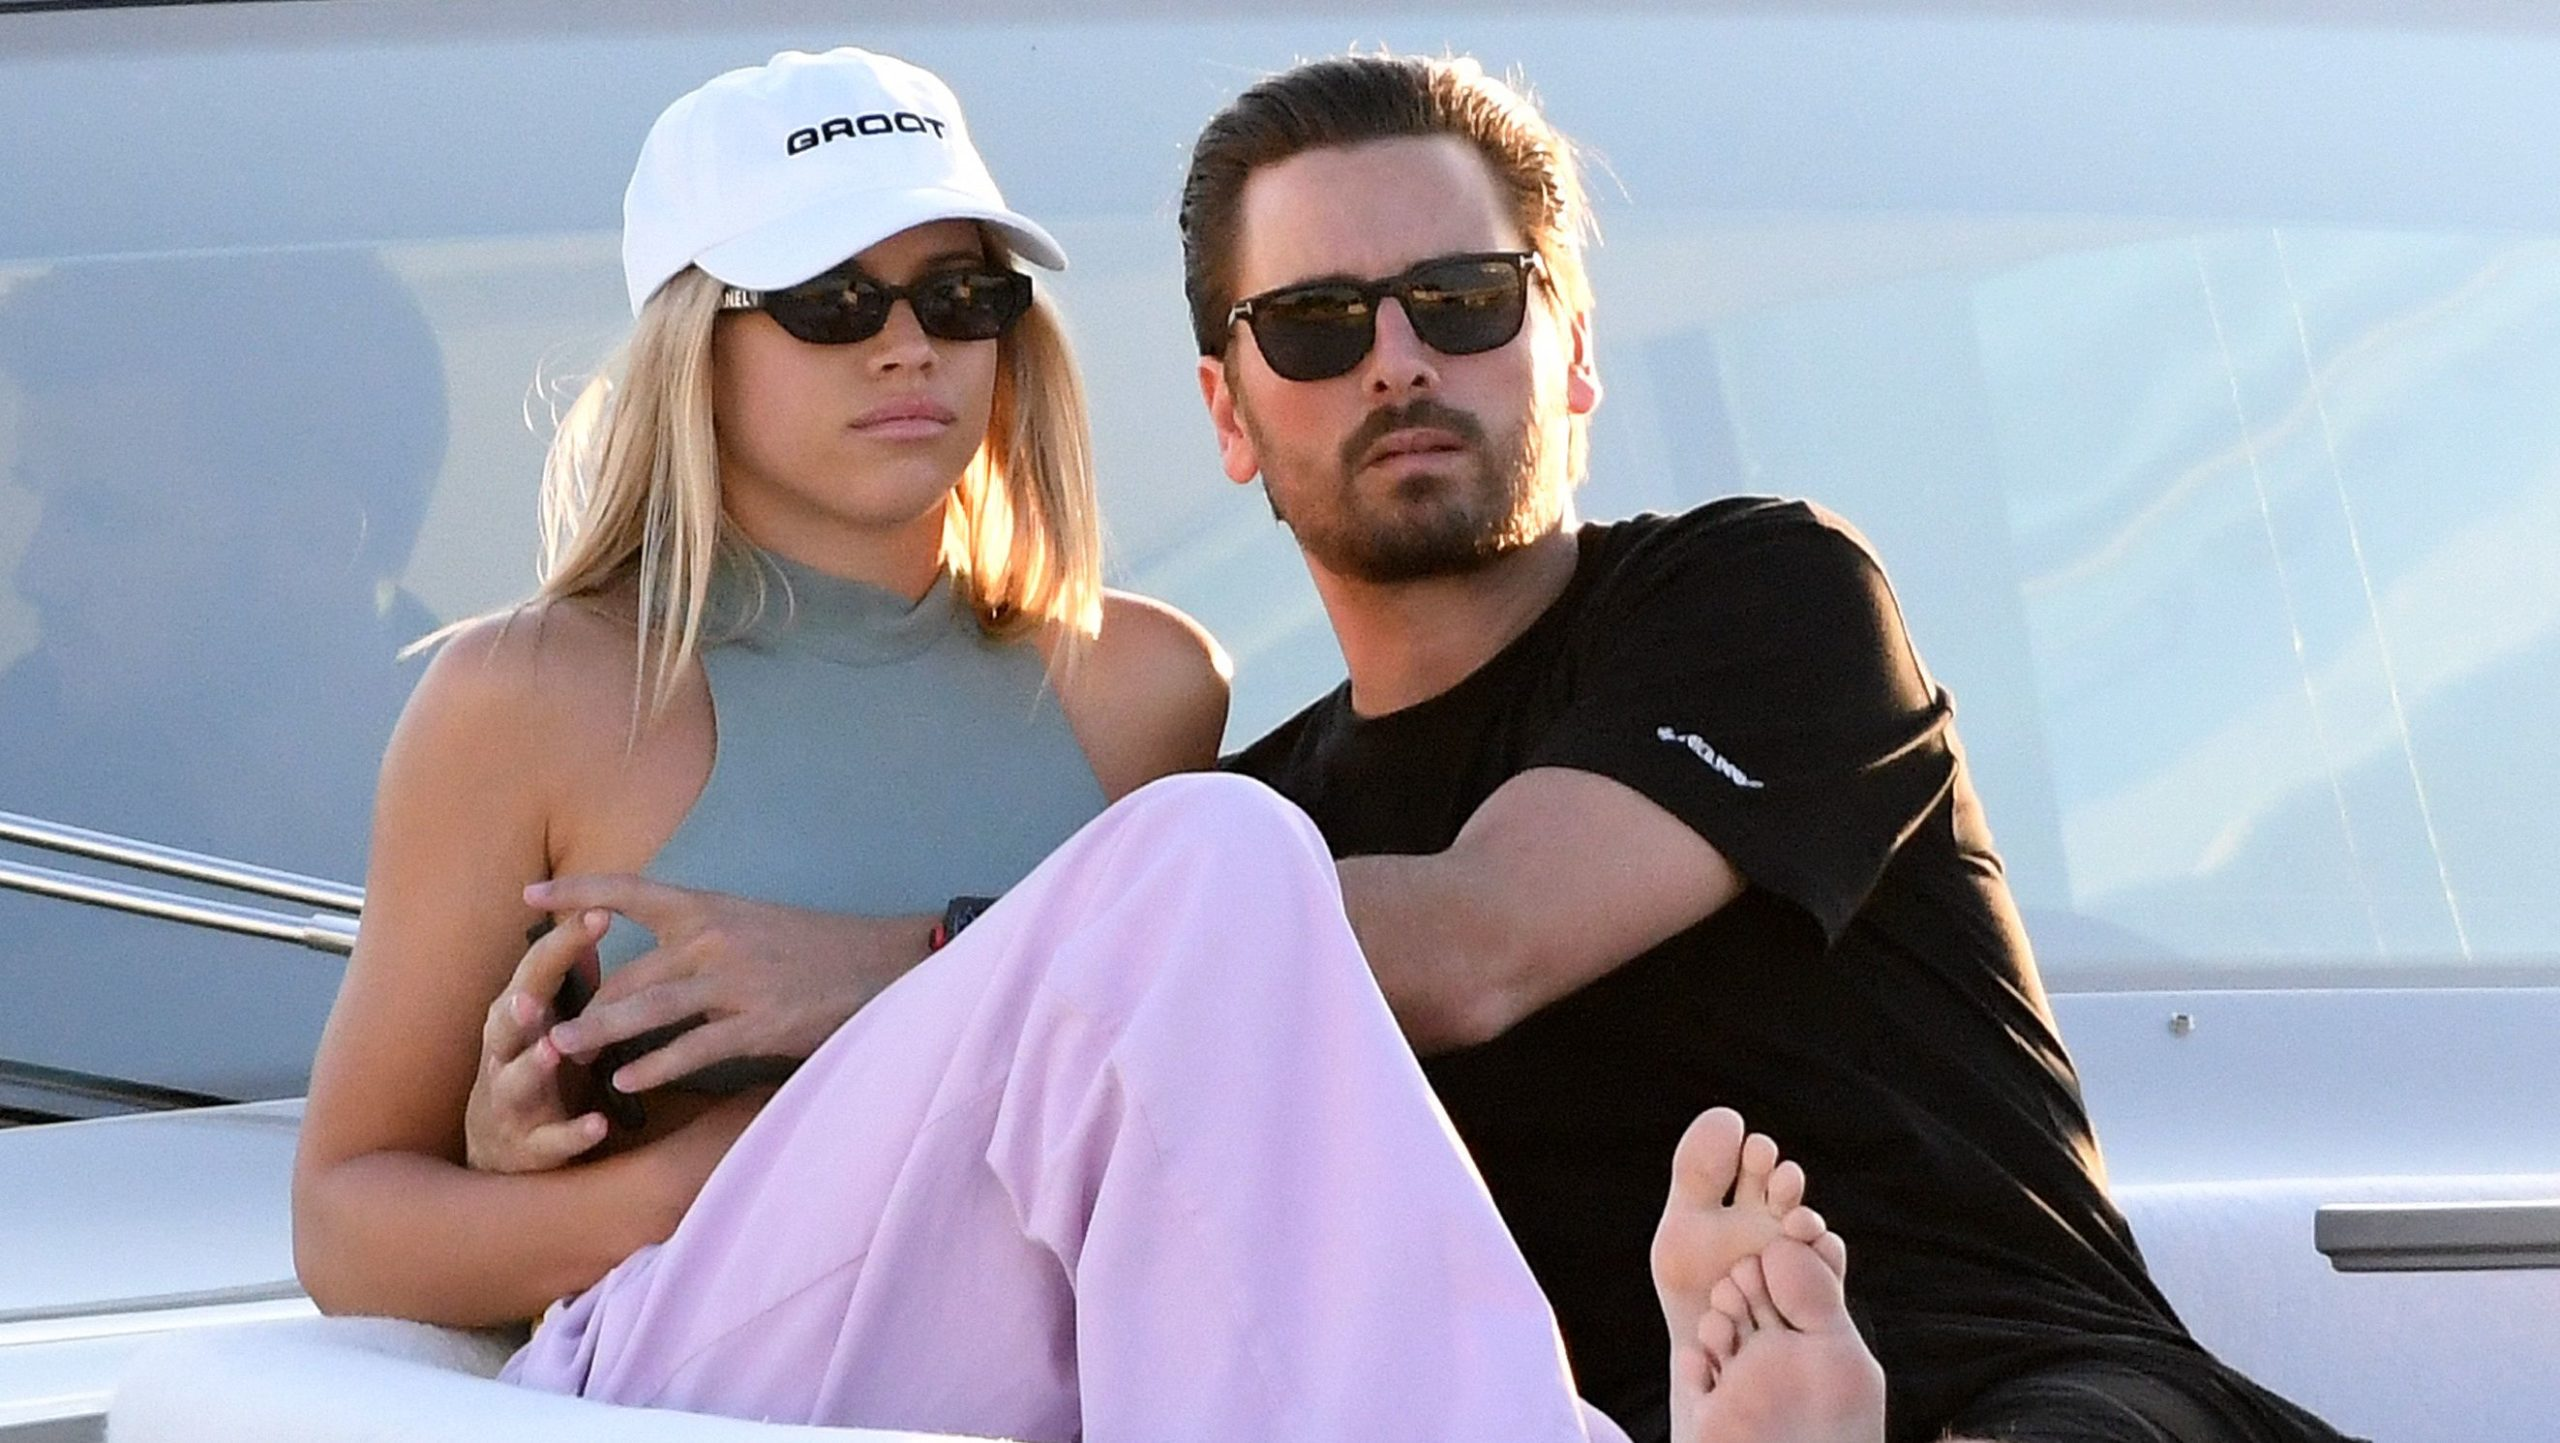 Scott Disick and Sofia Richie are Planning to get Married Soon